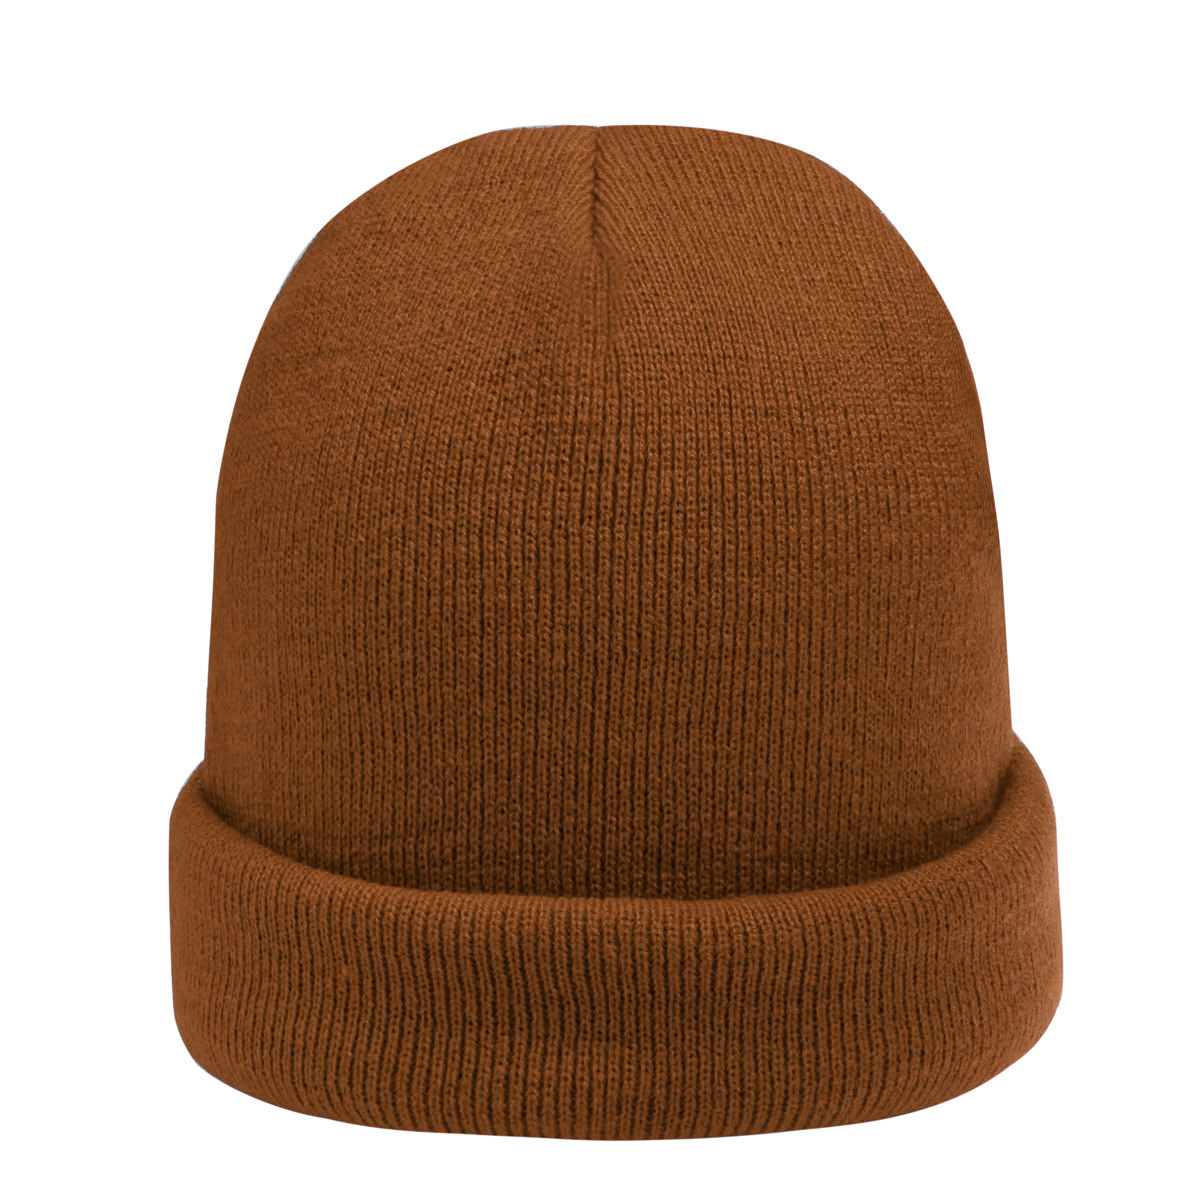 With love Beanie rainbow colors - brown